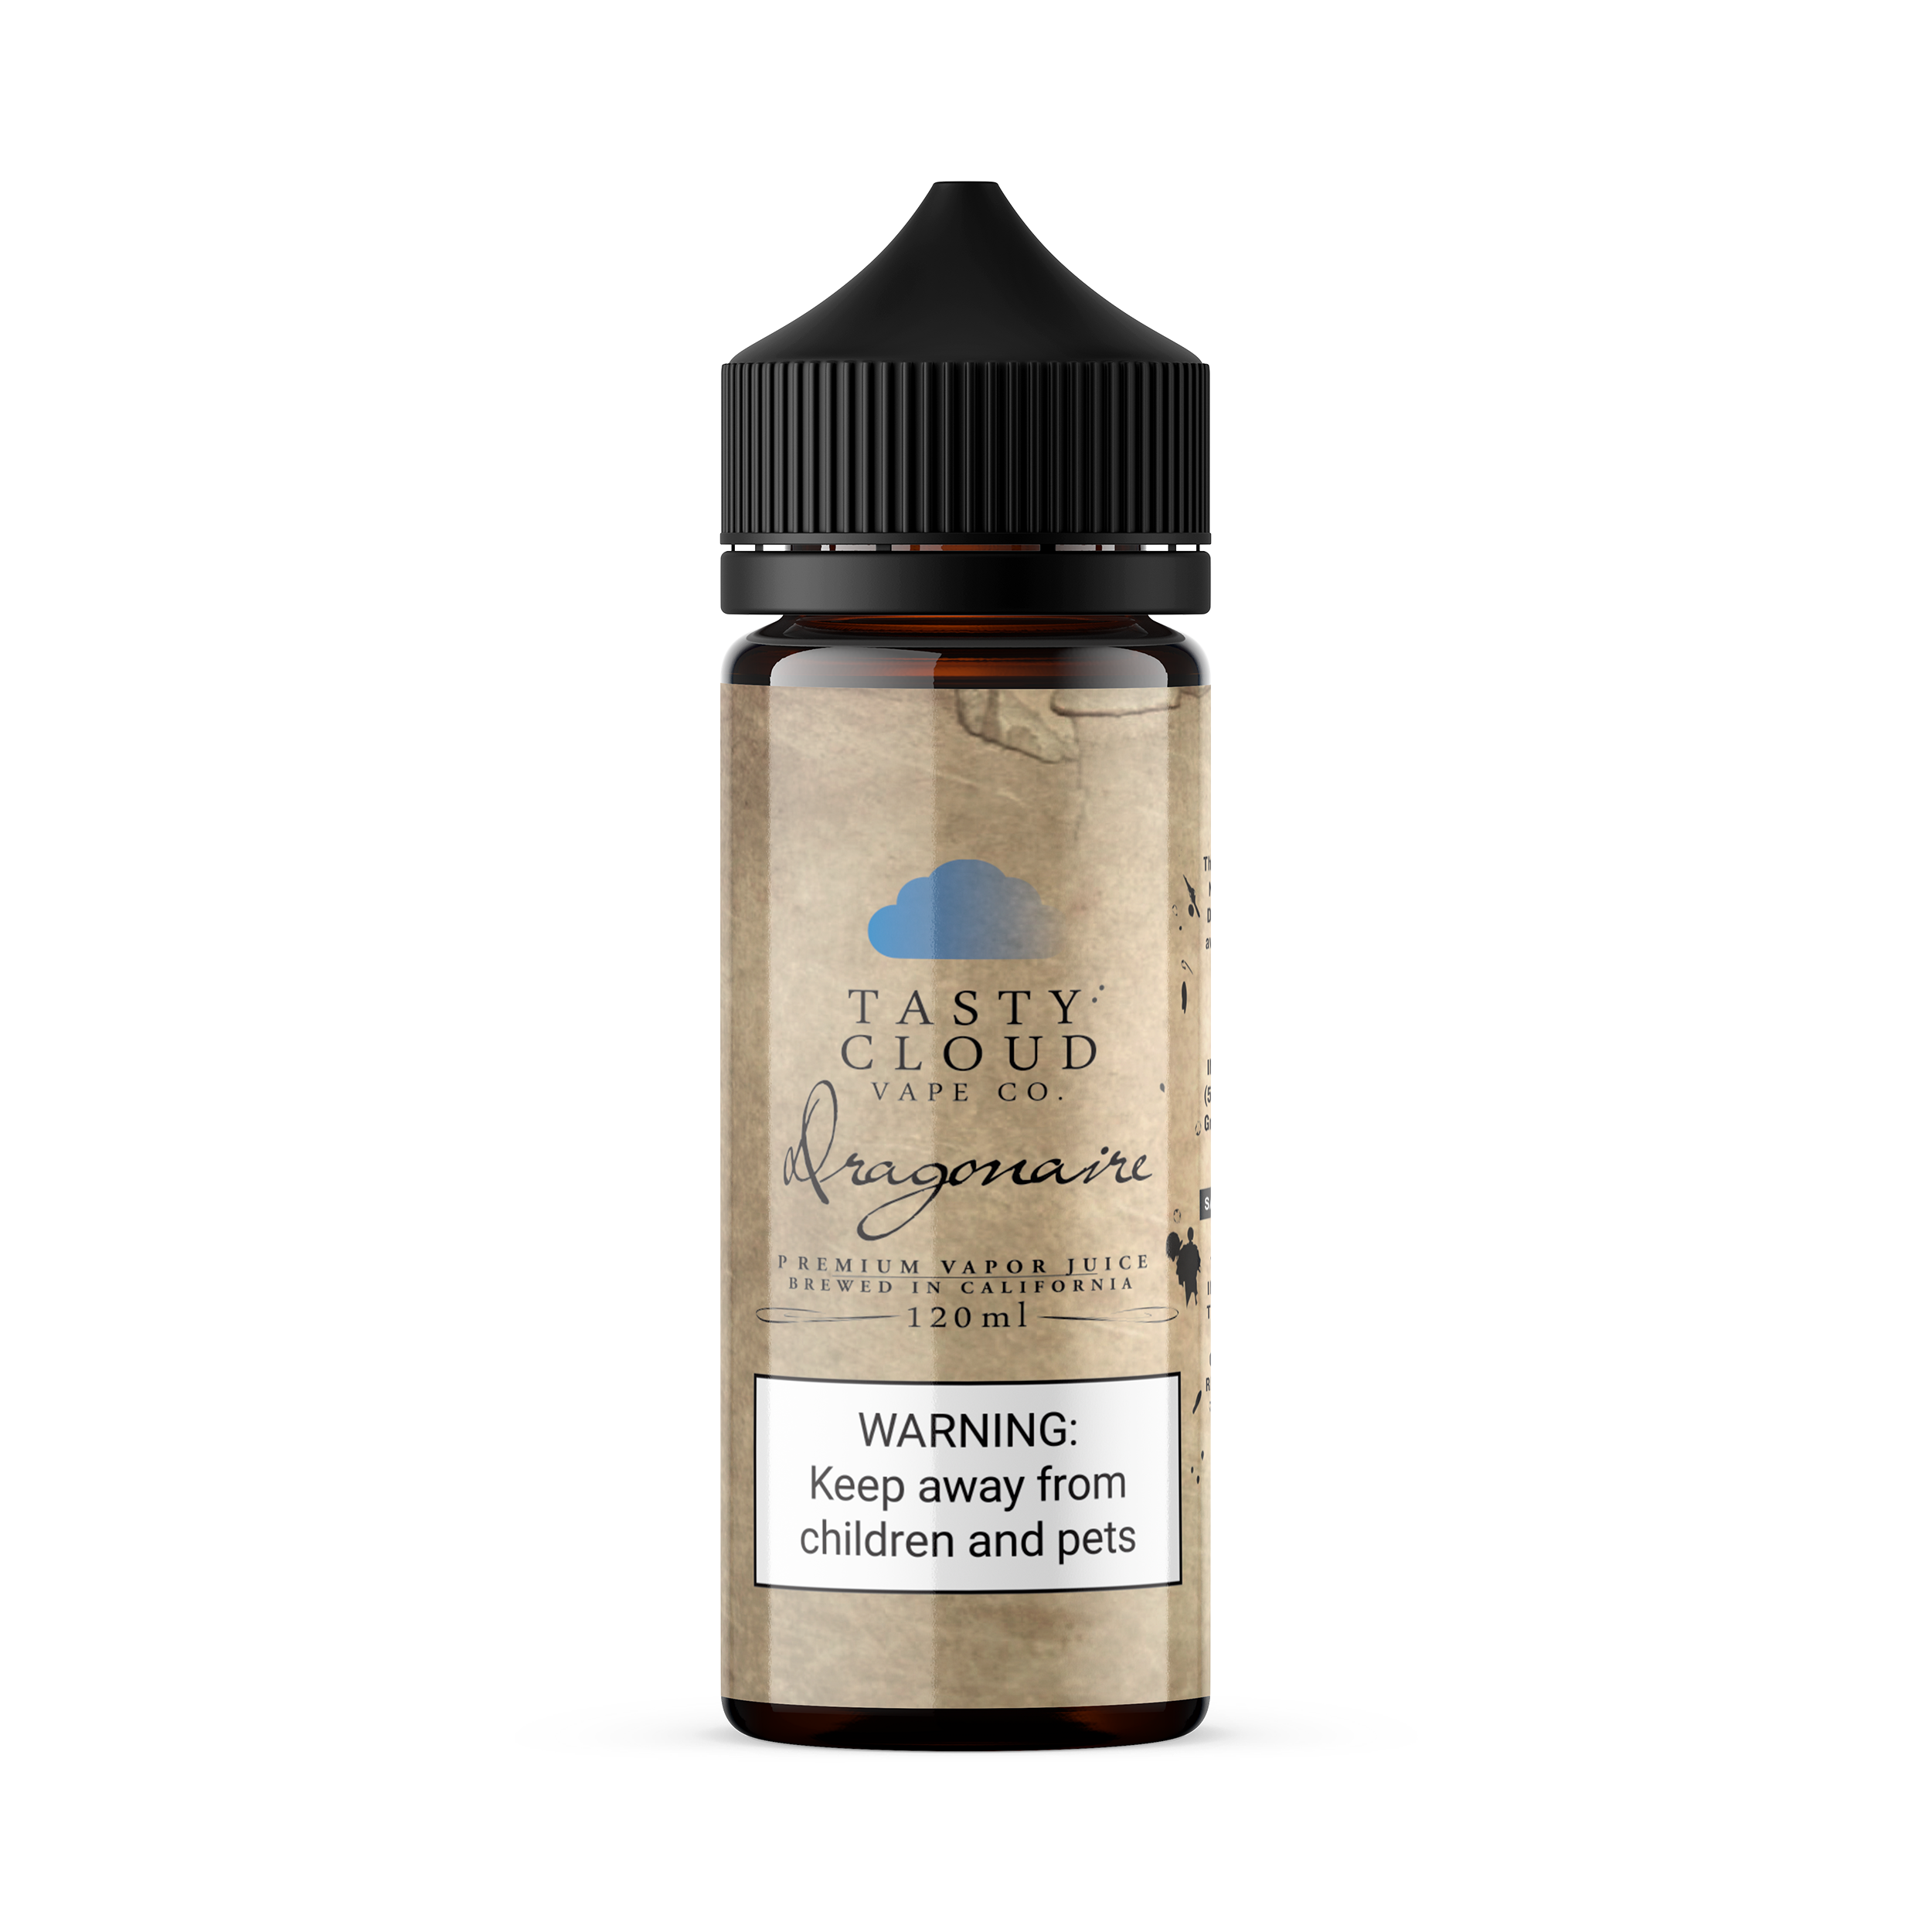 Tasty Cloud Vape Co - Tasty Cloud Classic - Dragonaire